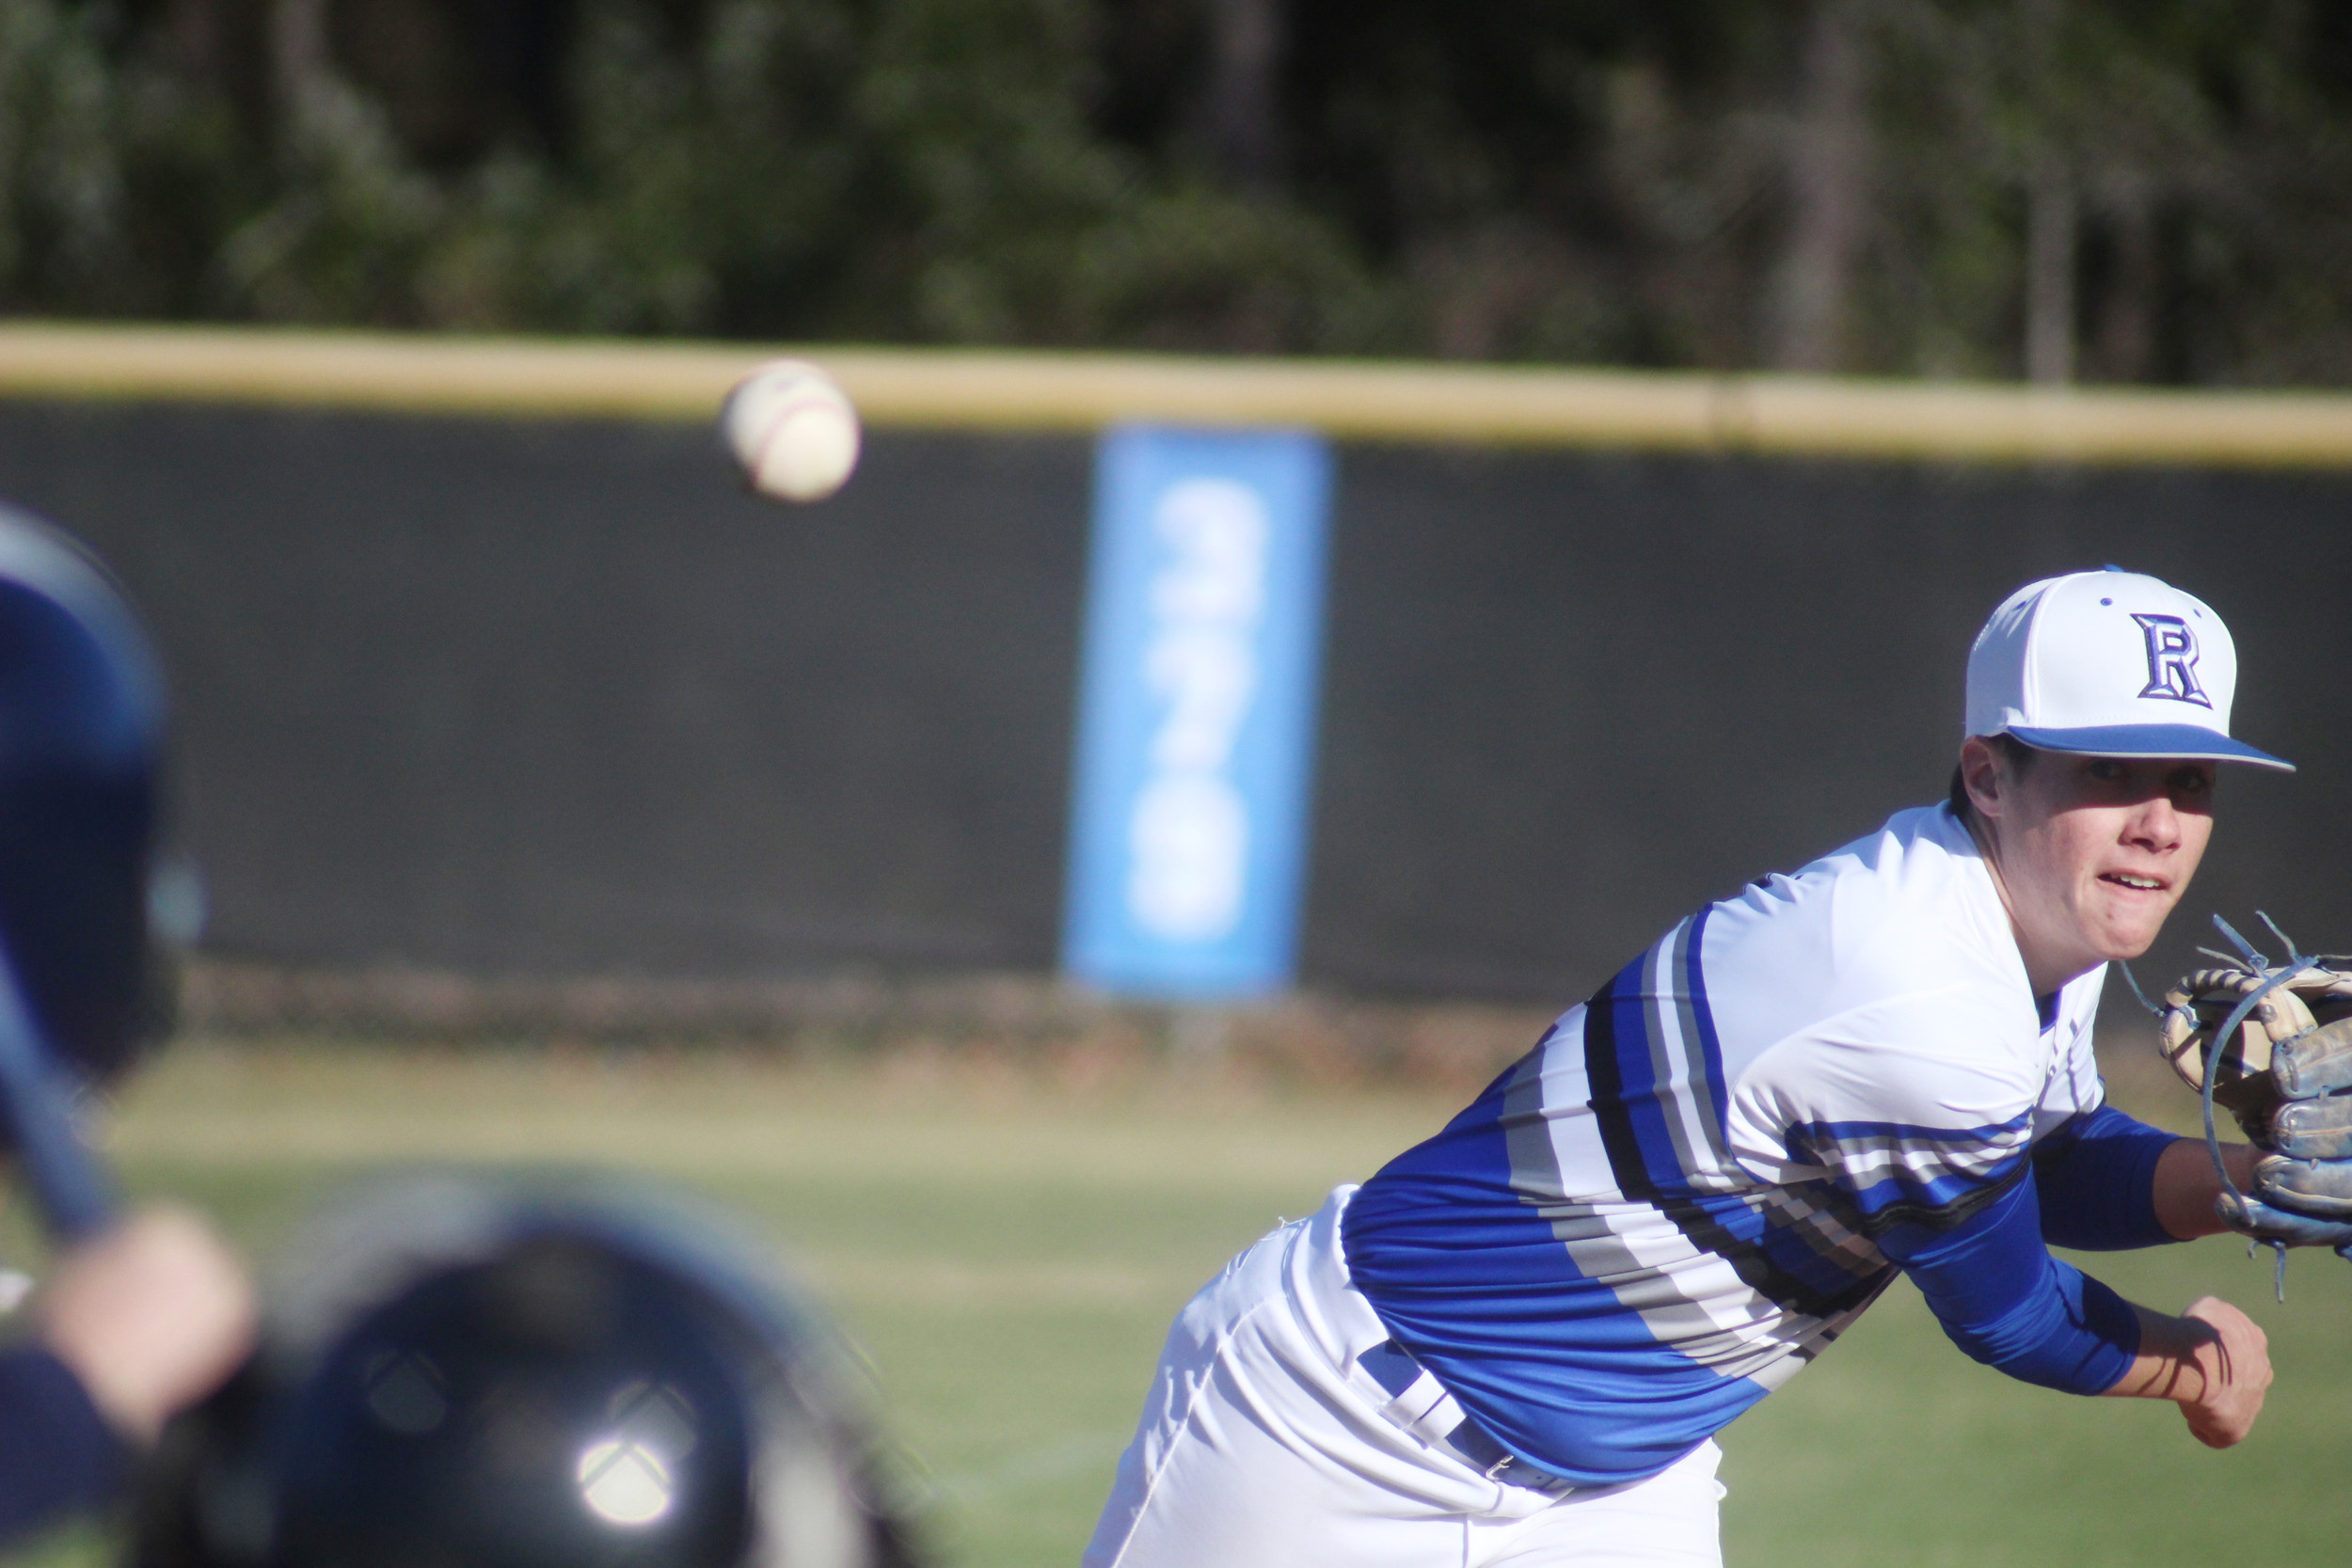 Staff photo by Randy Lefko